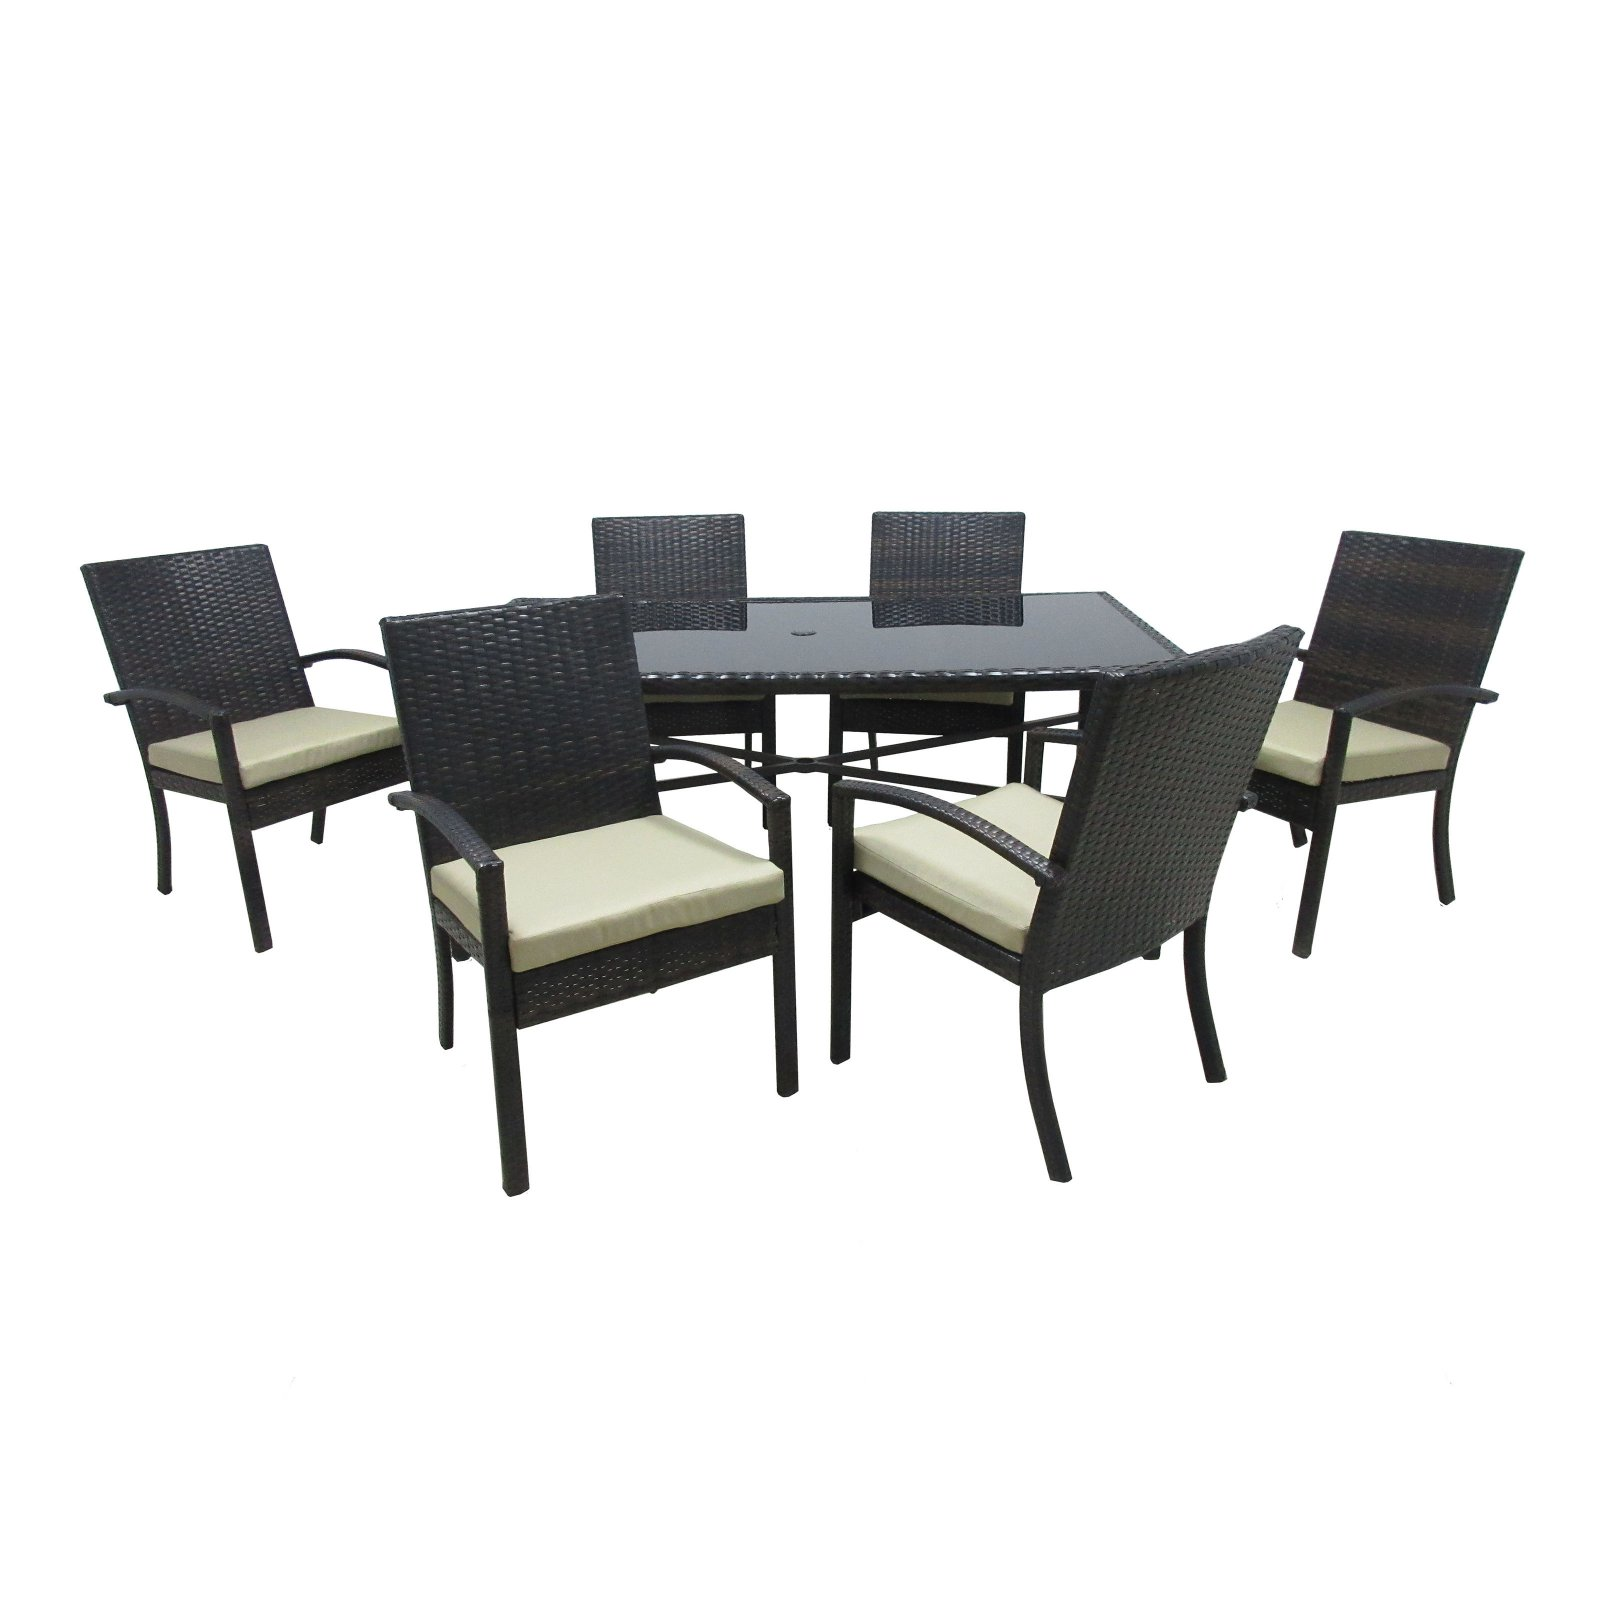 Outdoor Innovation Chelsea Aluminum 7 Piece Rectangular Patio Dining Room Set by Overstock